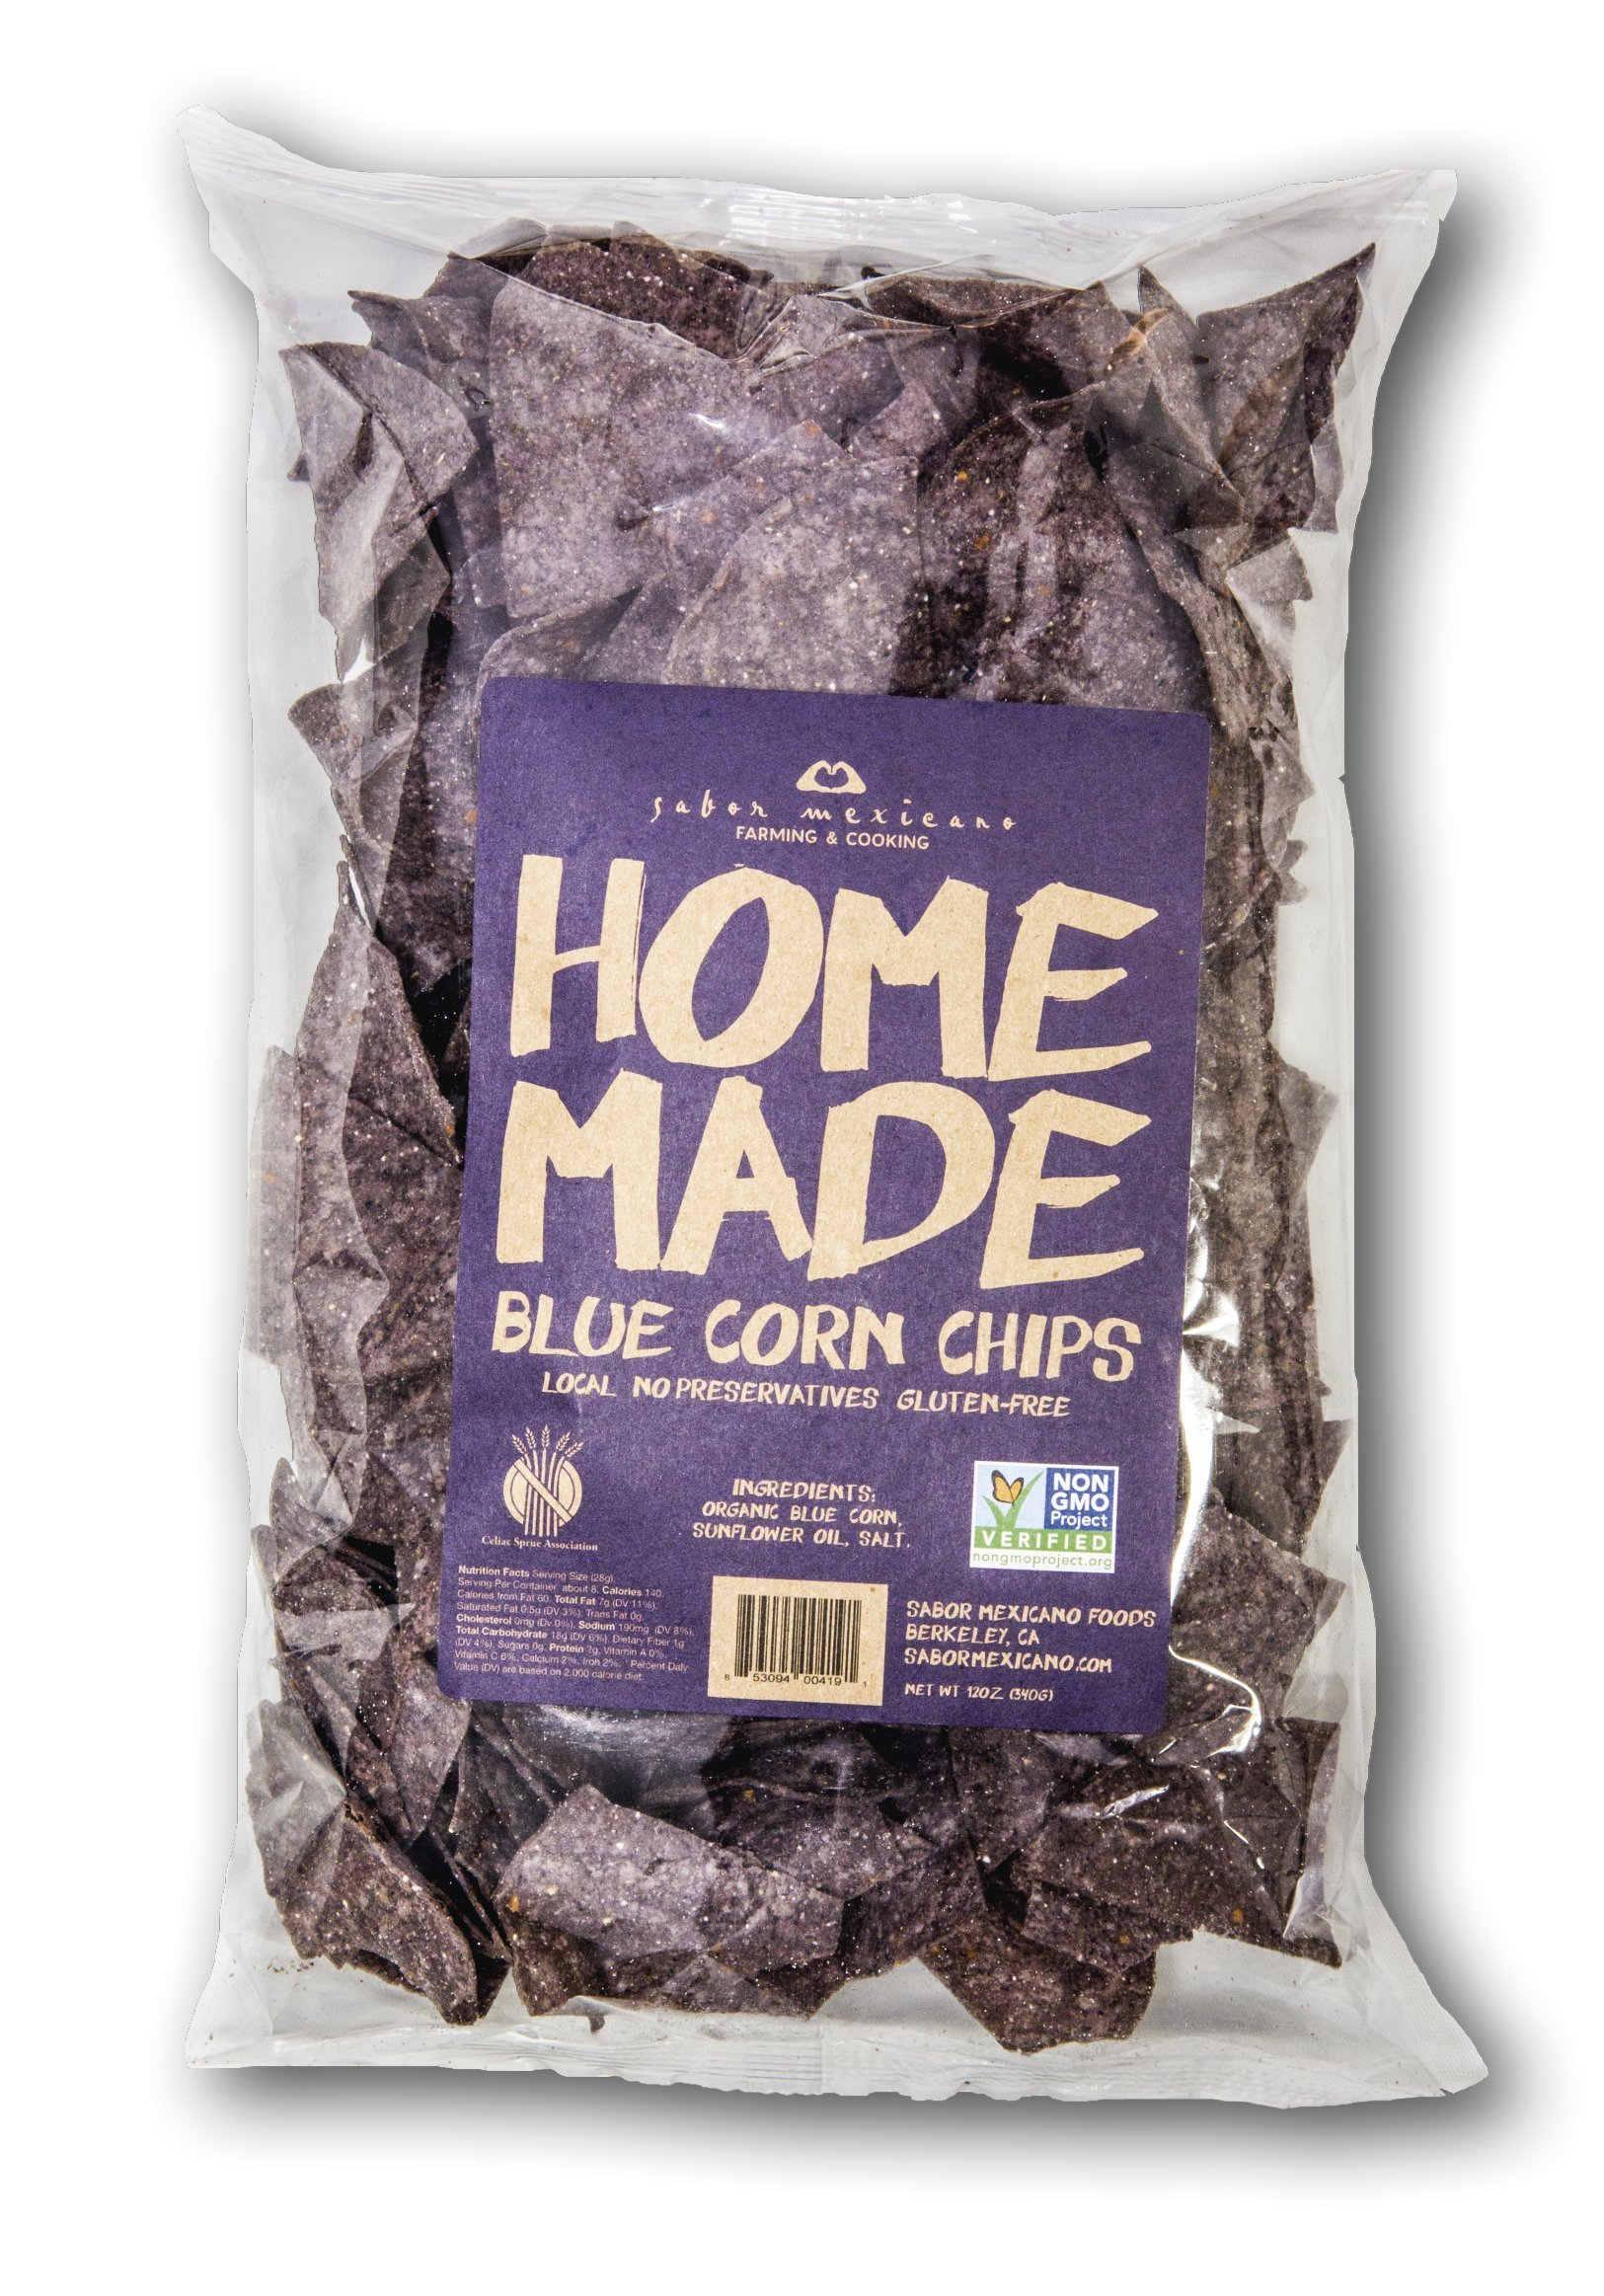 Home Made Blue Corn Chips